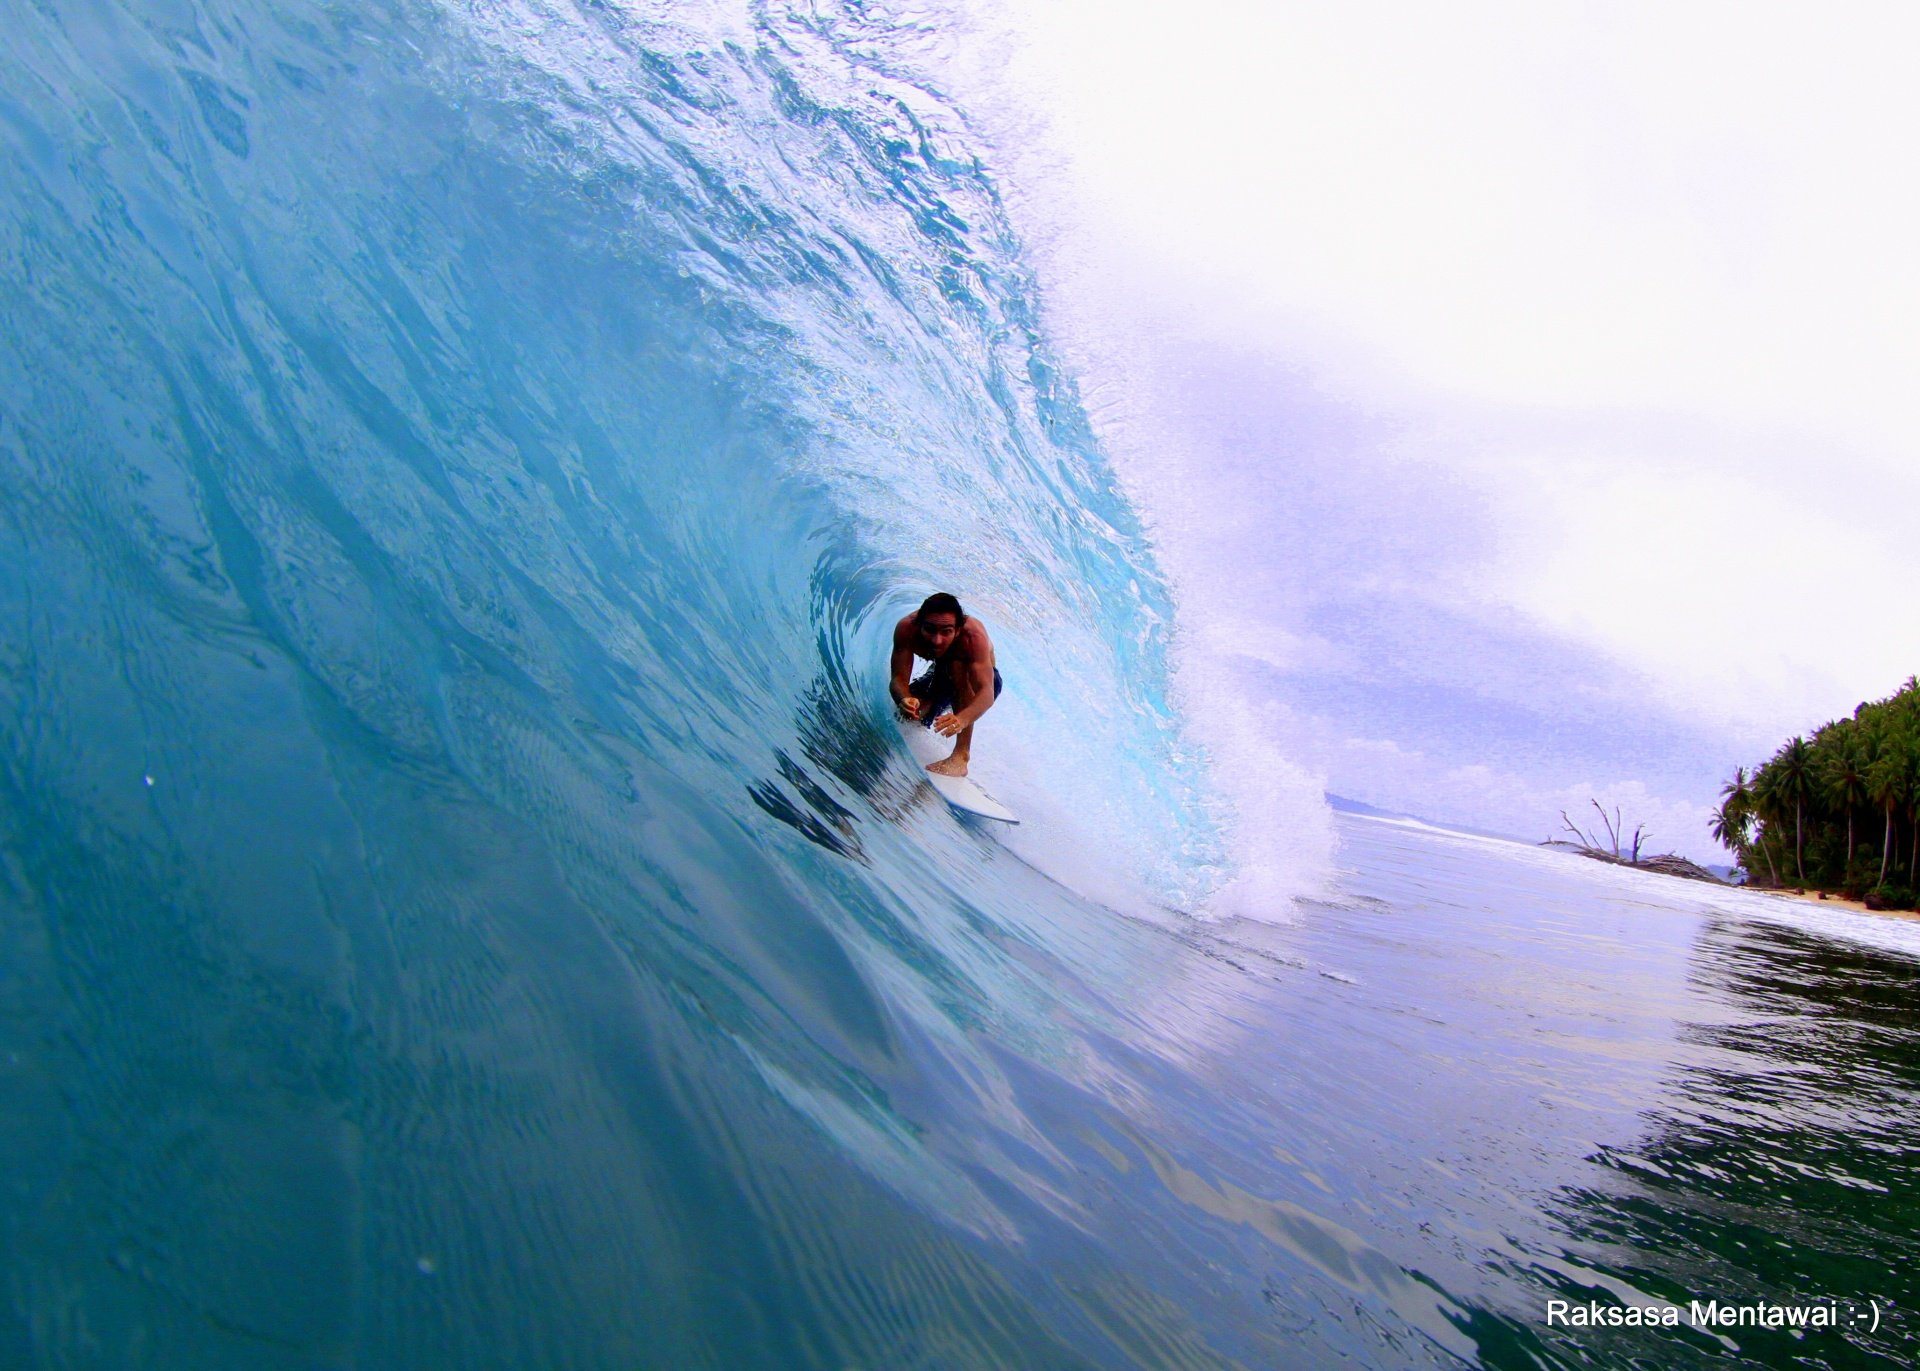 Raksasa Mentawai's photo of Pit Stops